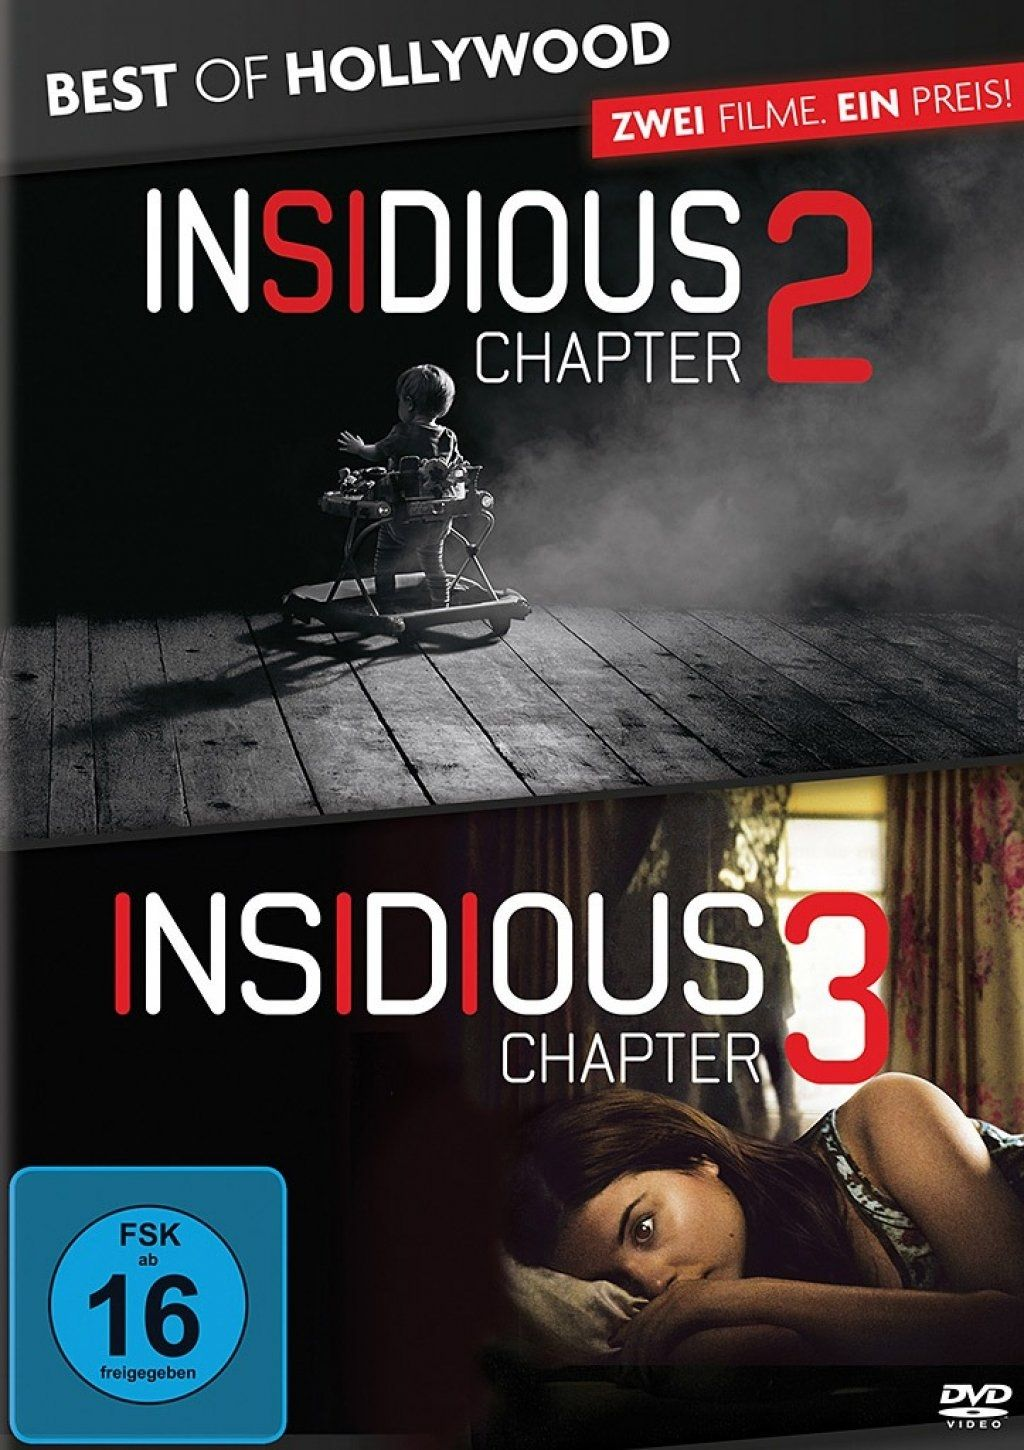 Insidious: Chapter 2 / Insidious: Chapter 3 (Double Feature) (2 Discs)